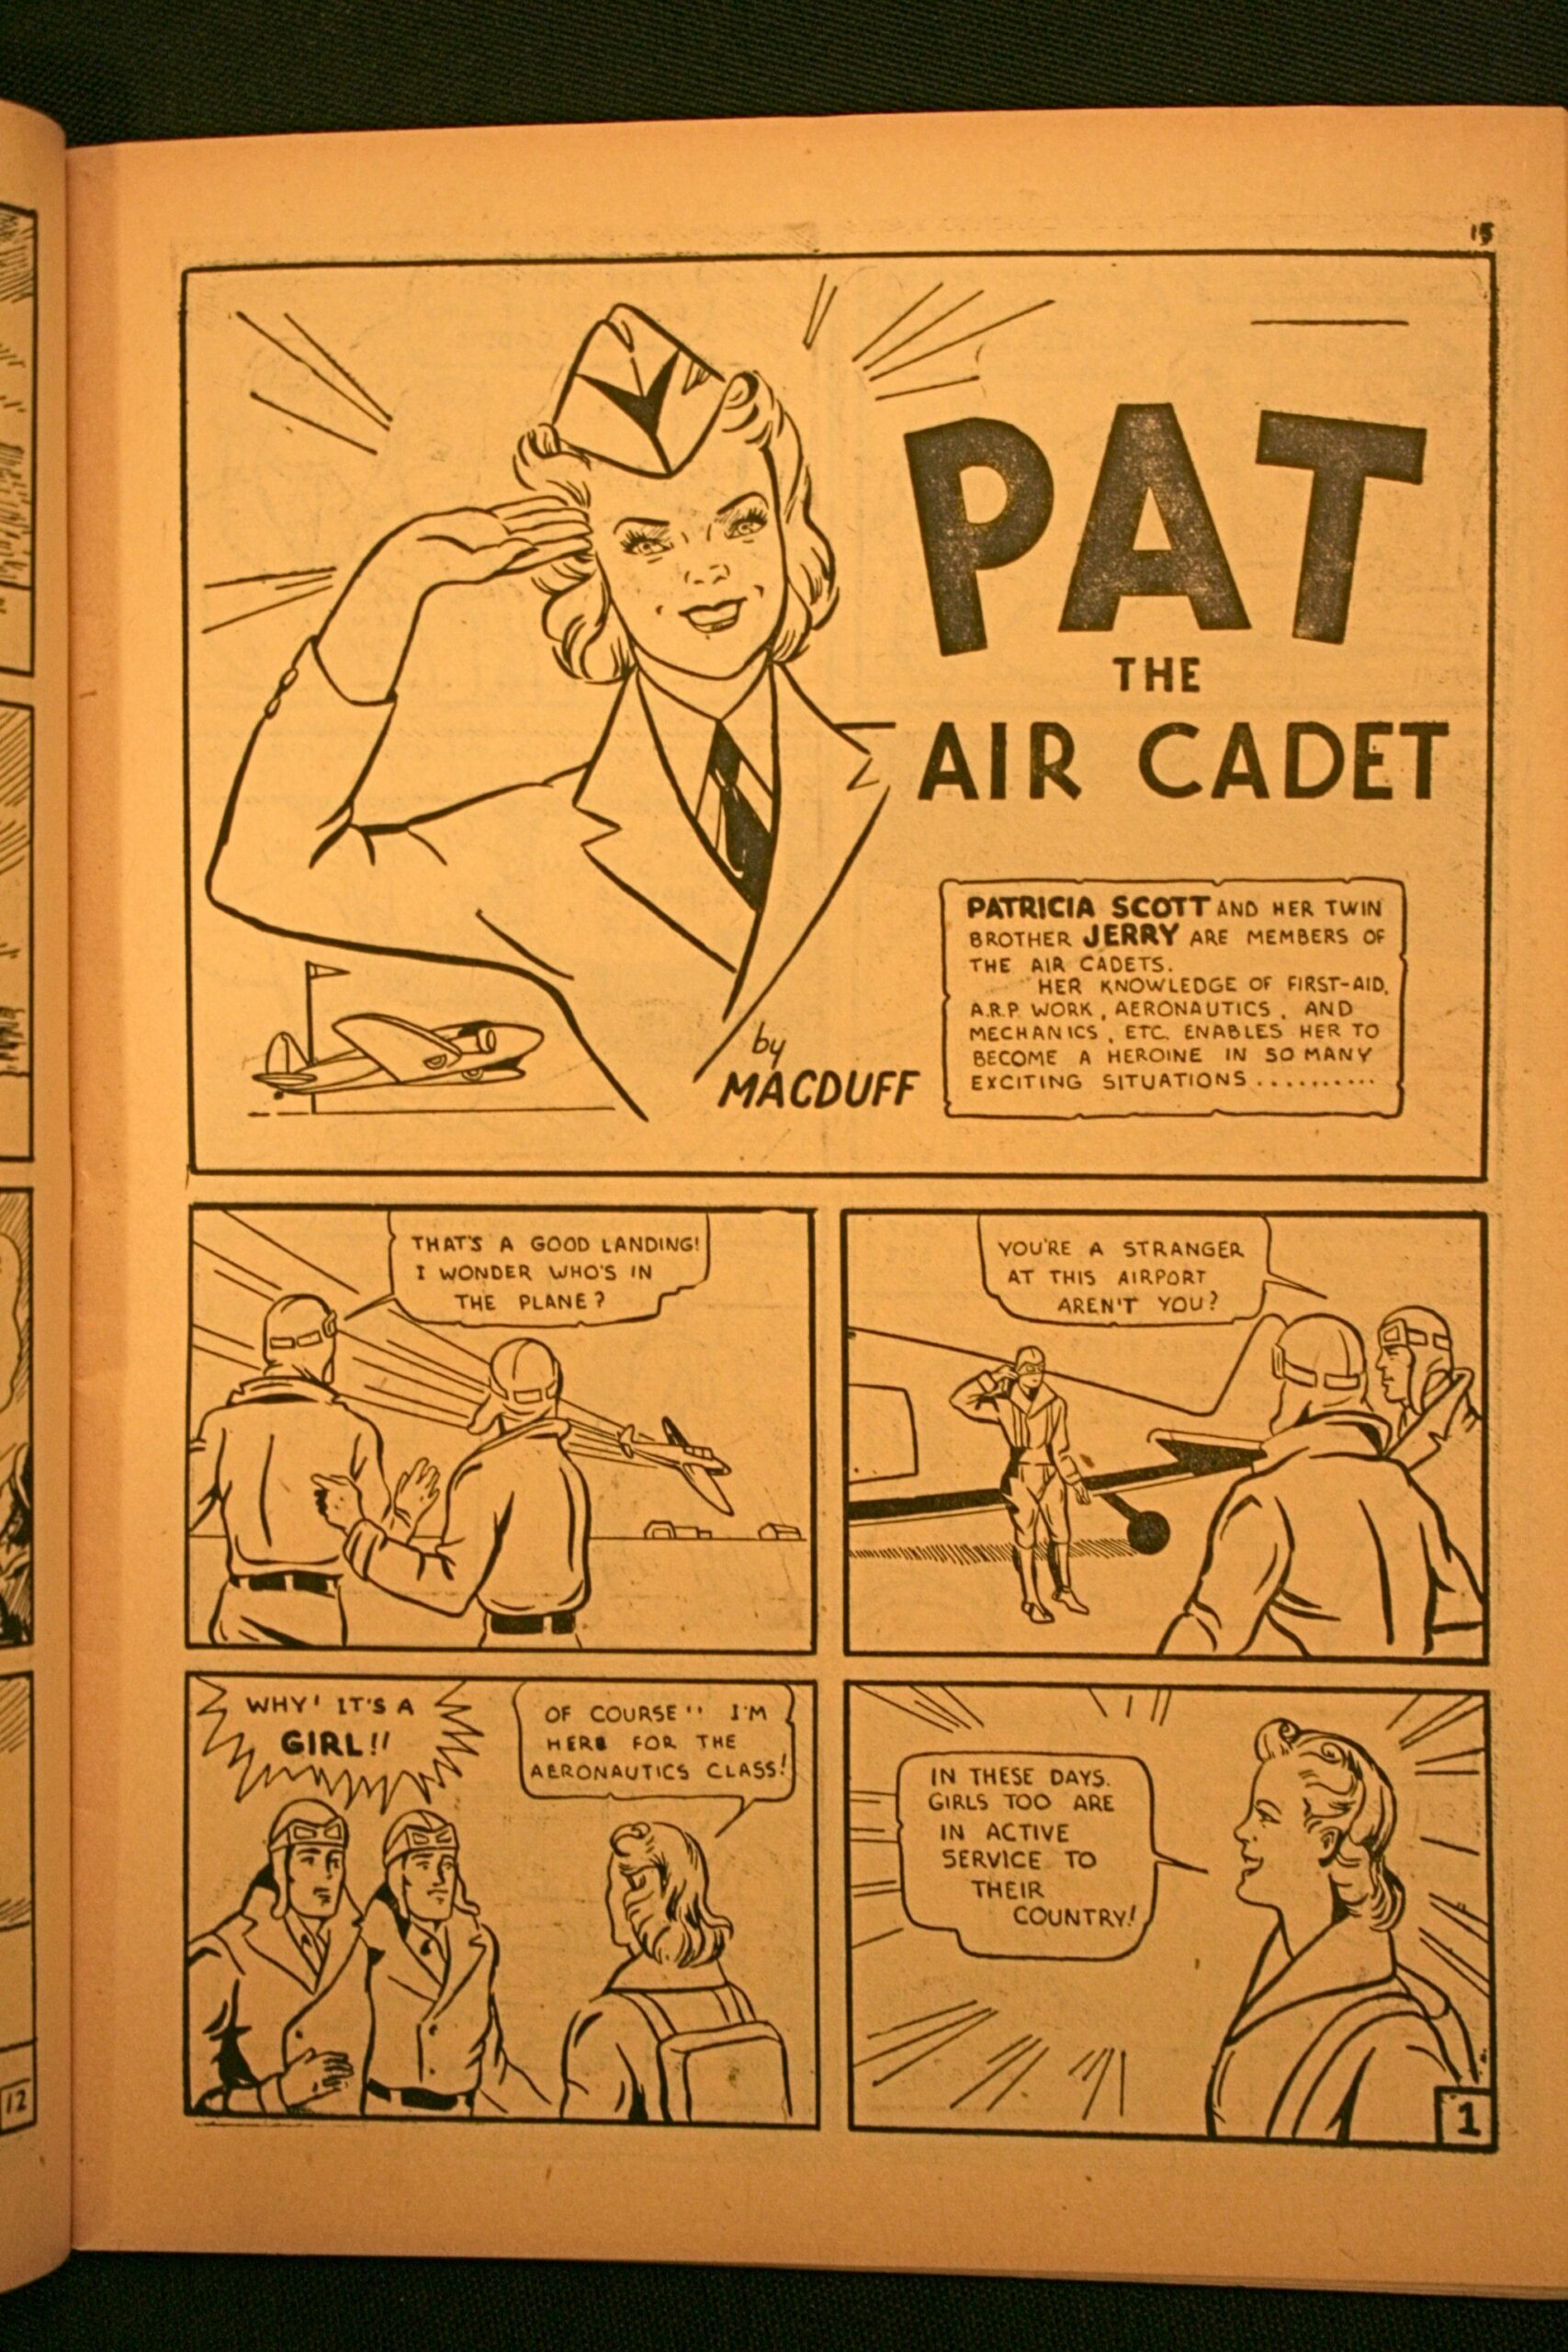 C:\Users\Robert\Documents\CANADIAN CARTOONING ILLUSTRATION and ANIMATION\IMAGE CARTOON P\PAT THE AIR CADET Grand Slam 1-1, Sept-Oct 1941, 15.jpg